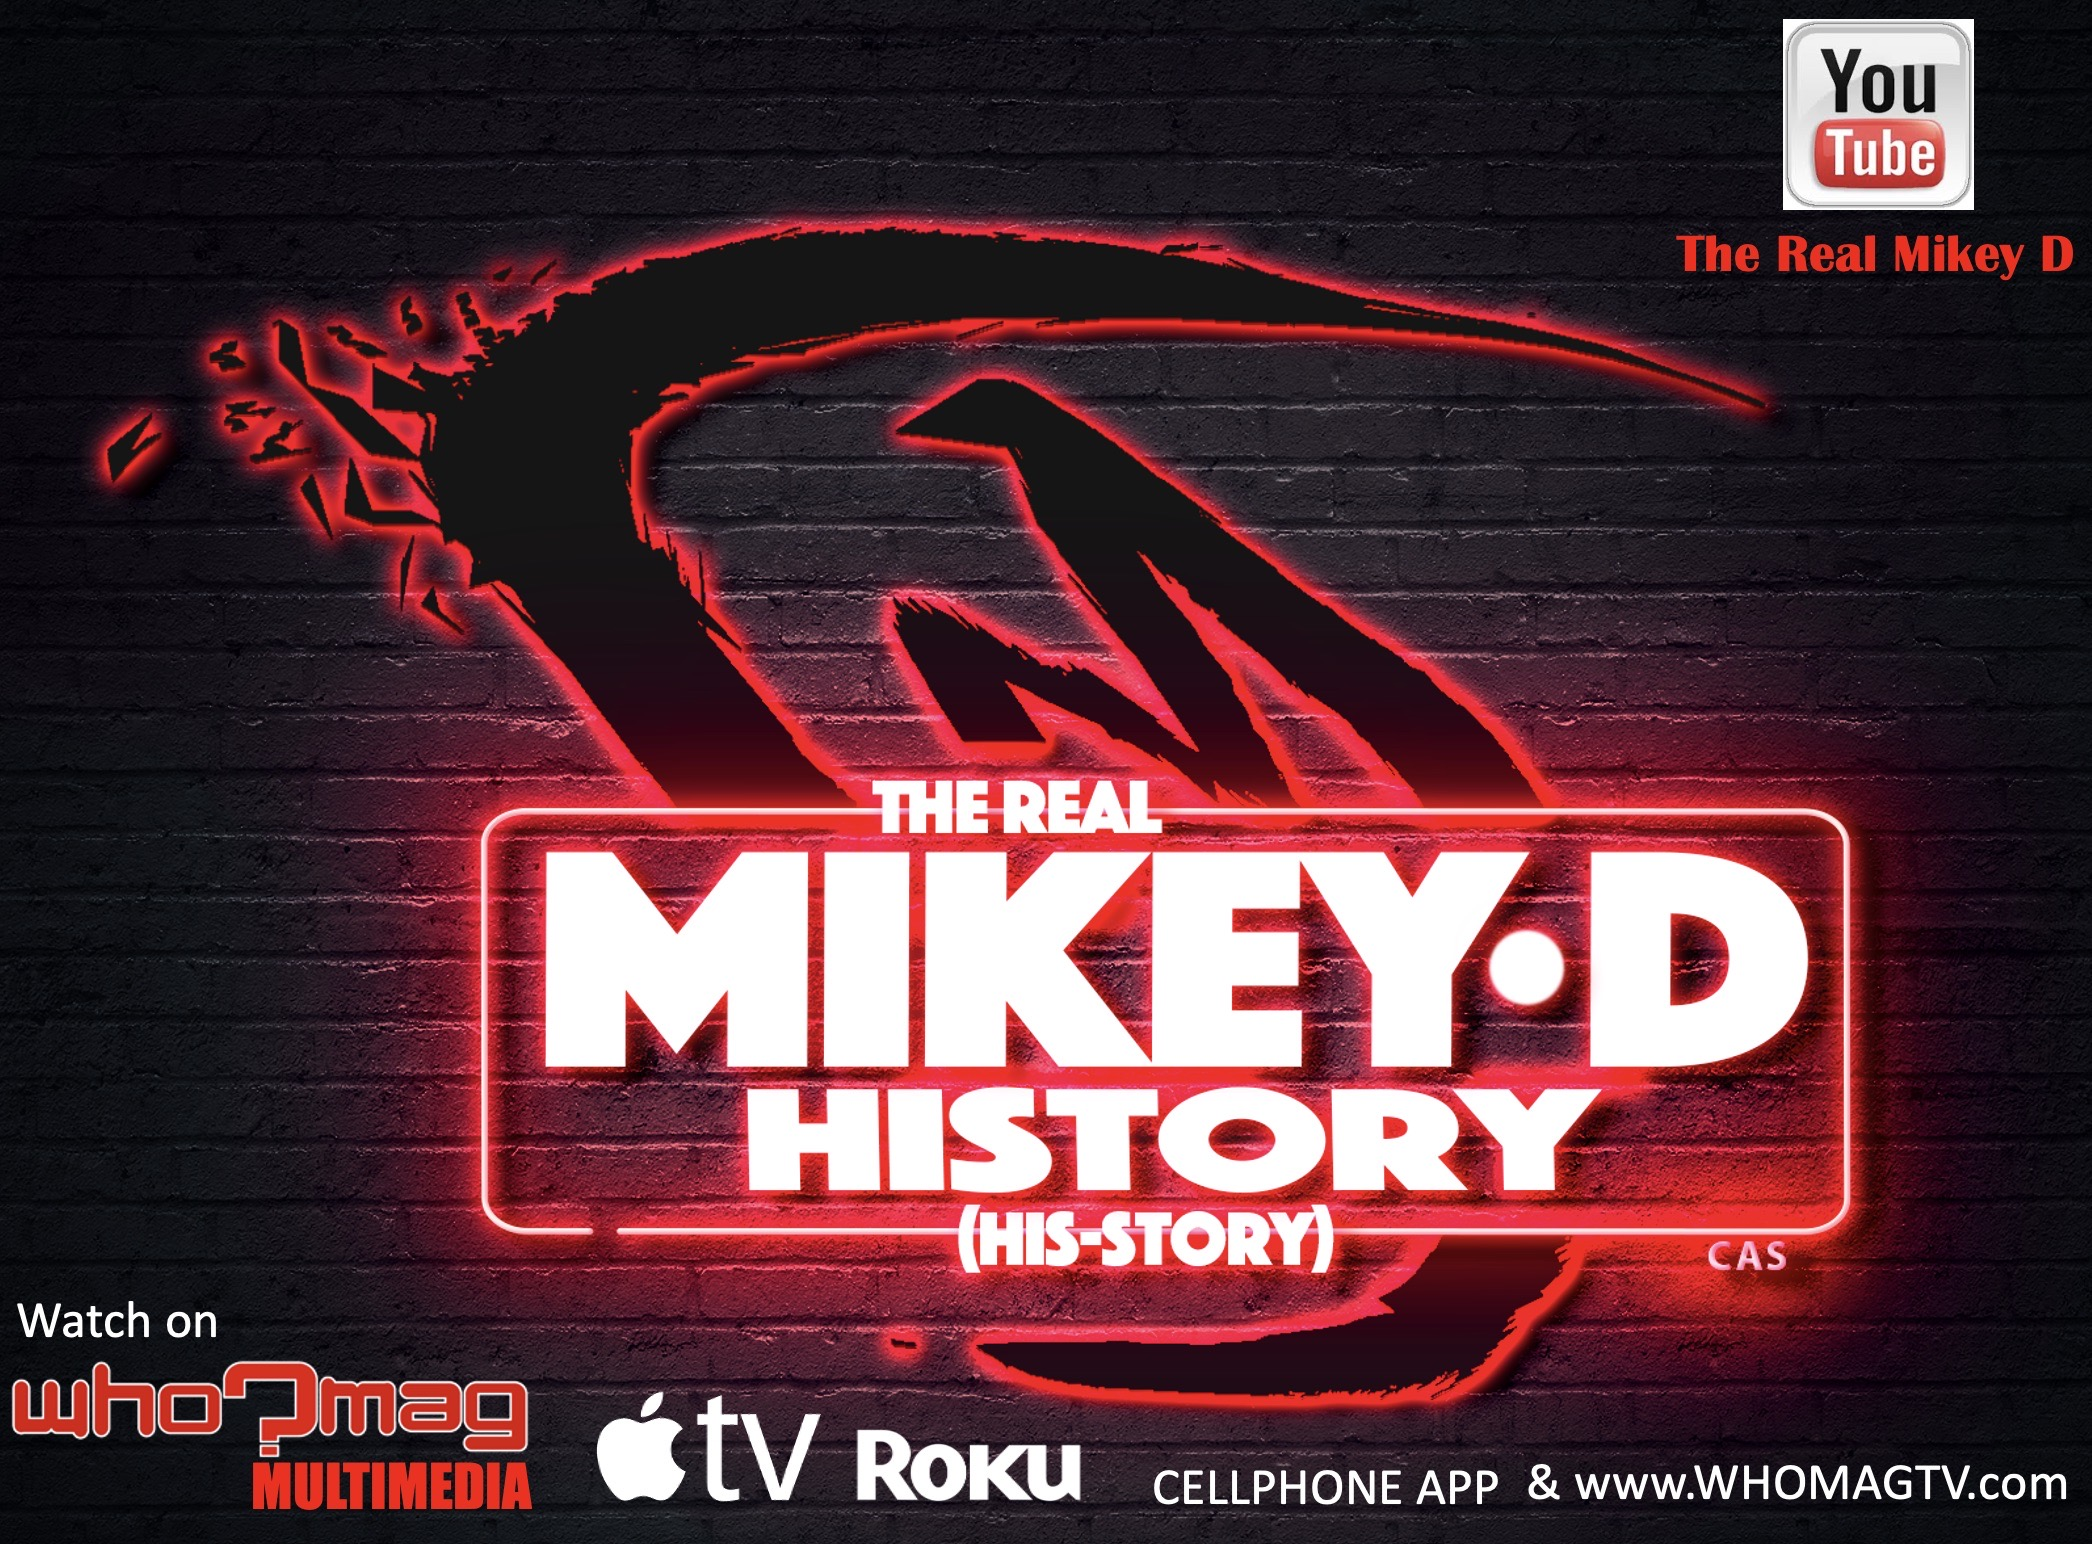 Queens Hip-Hop Scene Icon to Release Documentary Series The Real Mikey D History (His-Story)